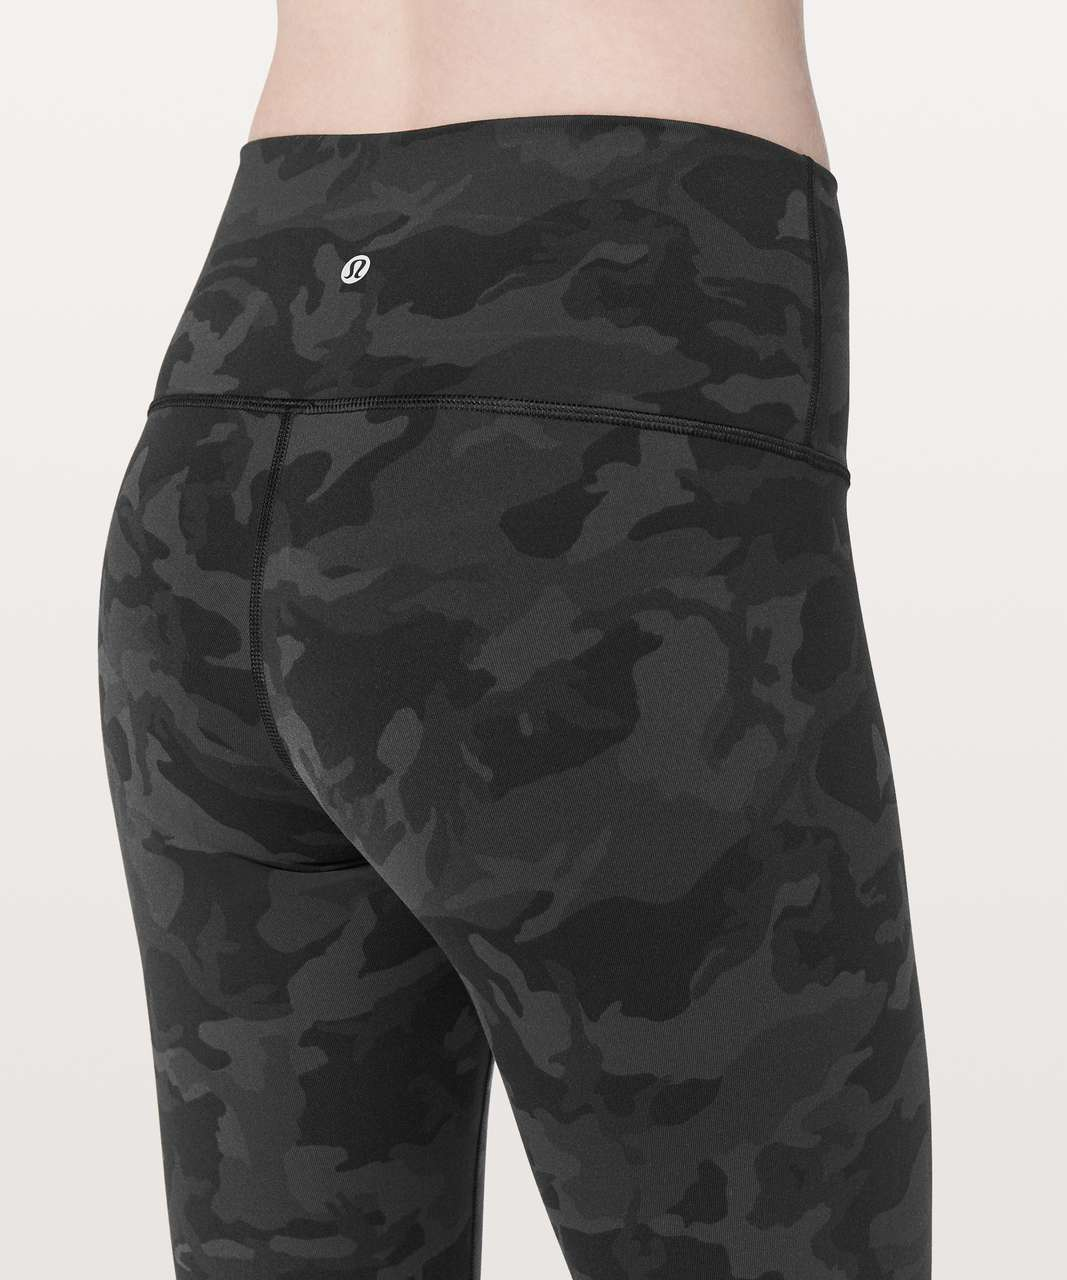 "Lululemon Wunder Under Crop (Hi-Rise) *Full-On Luon 21"" - Incognito Camo Multi Grey"